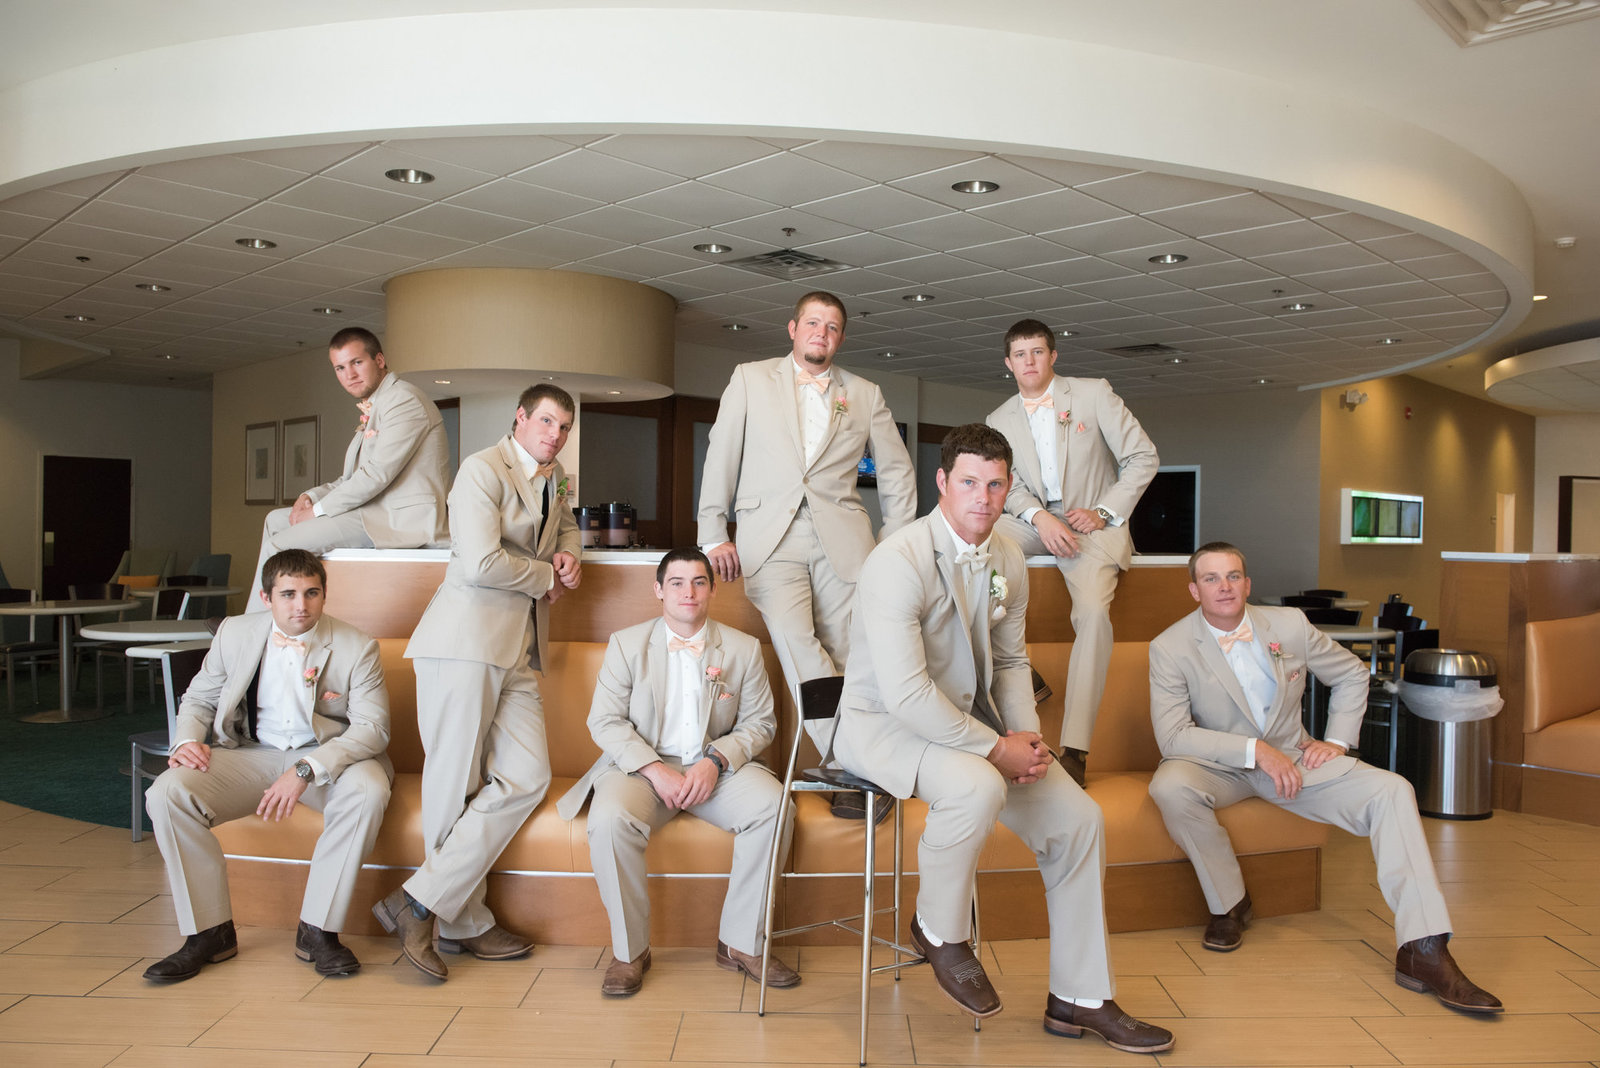 bridal party photos-0001